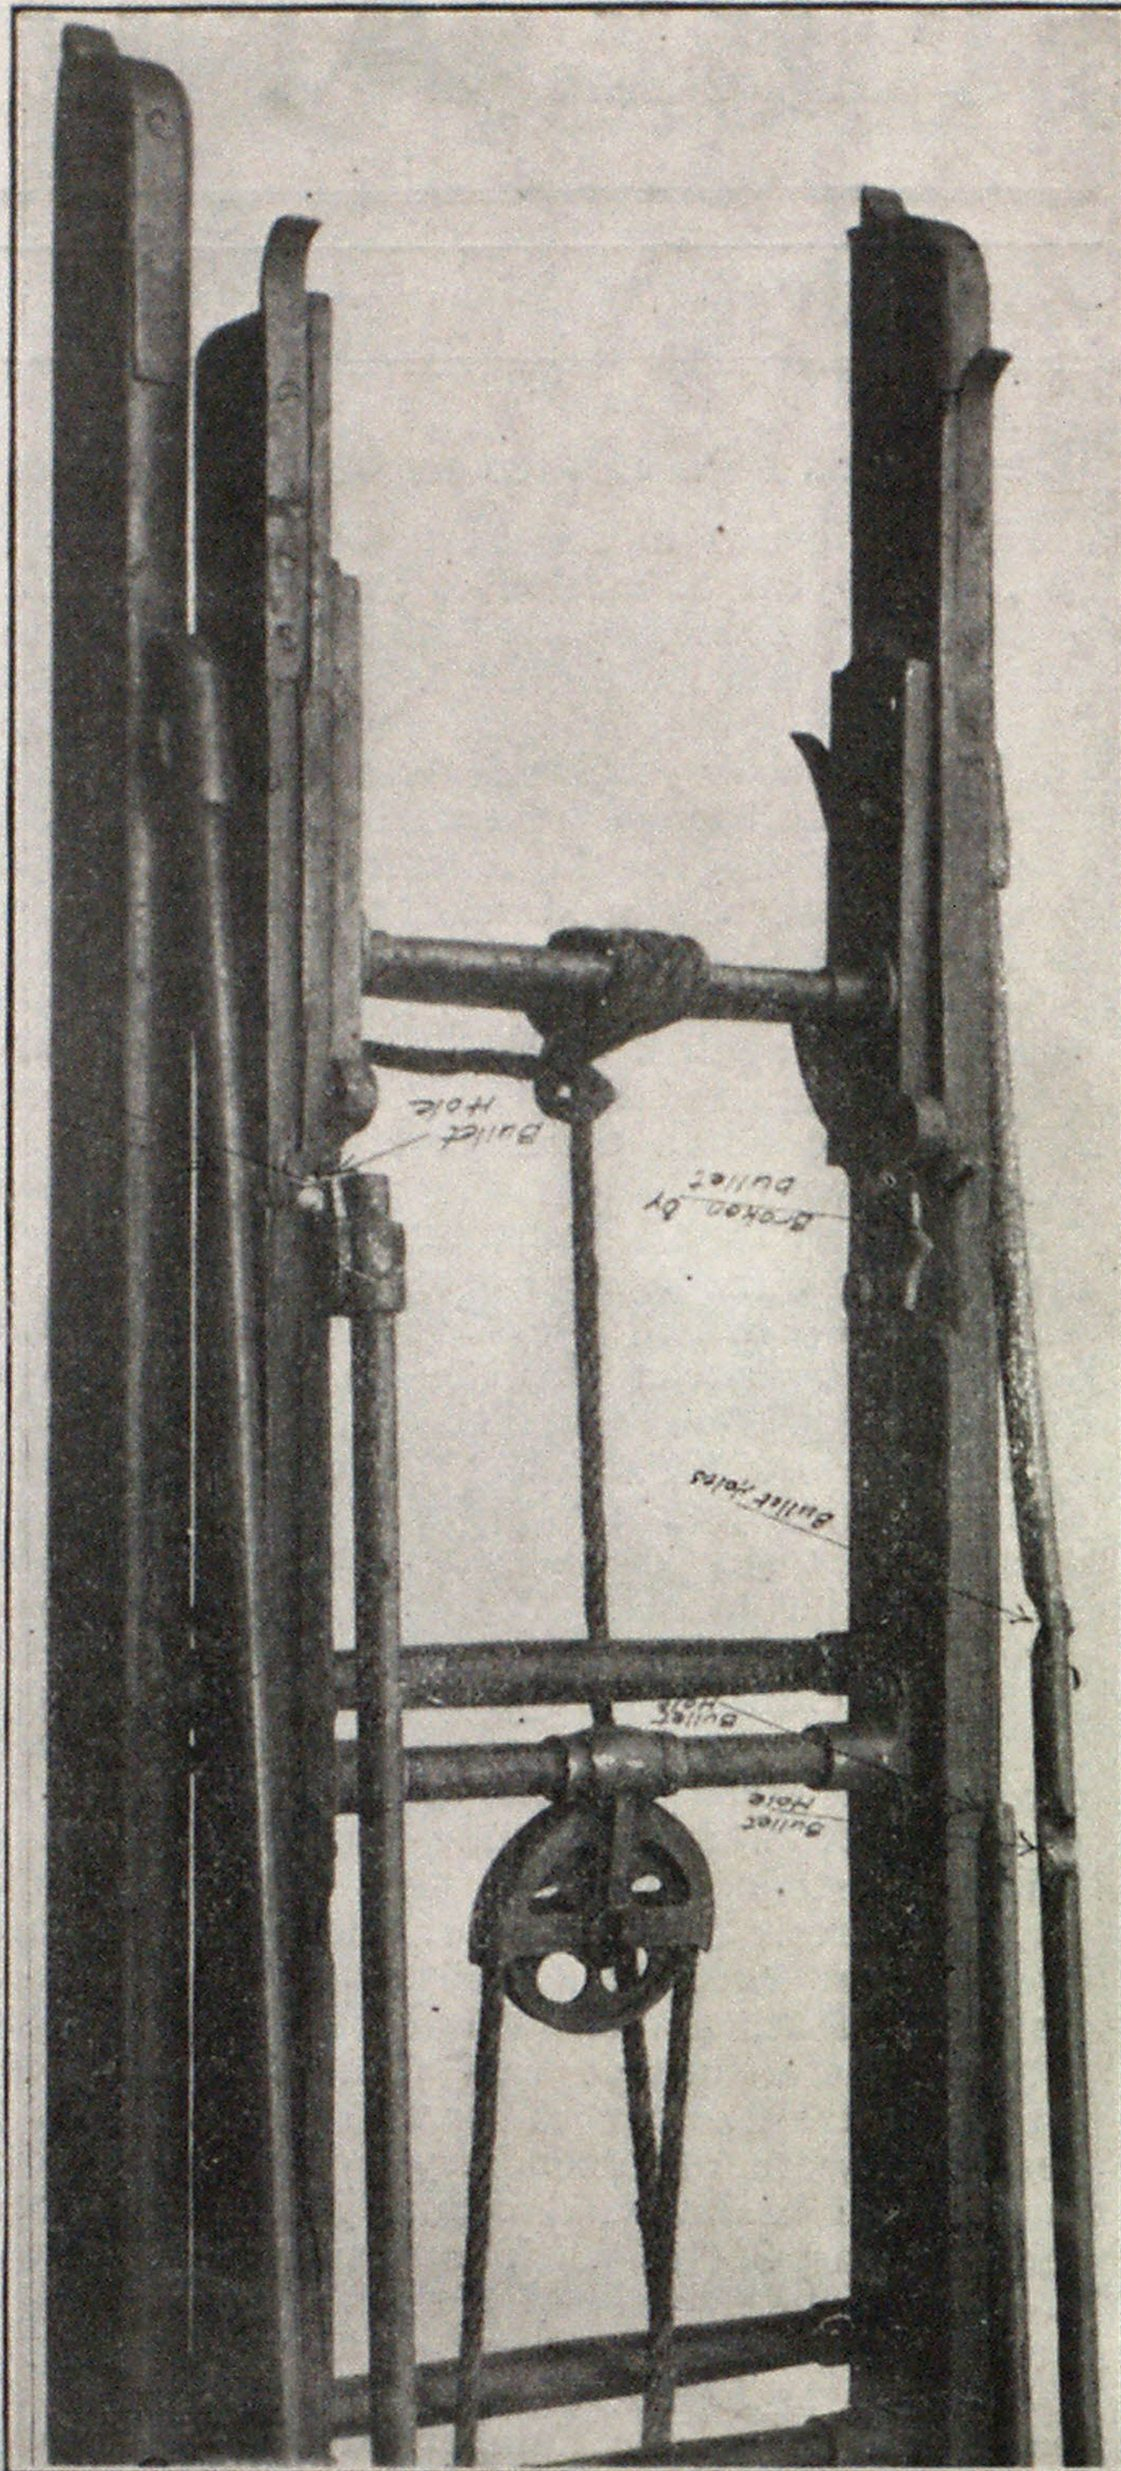 End of Telescopic Ladder Designed by Chief Purcell, With Steel Tubular Bracing, Shot at While in Use in Sackville Street. It is Equipped with C. N. Richardson Ladder Locks